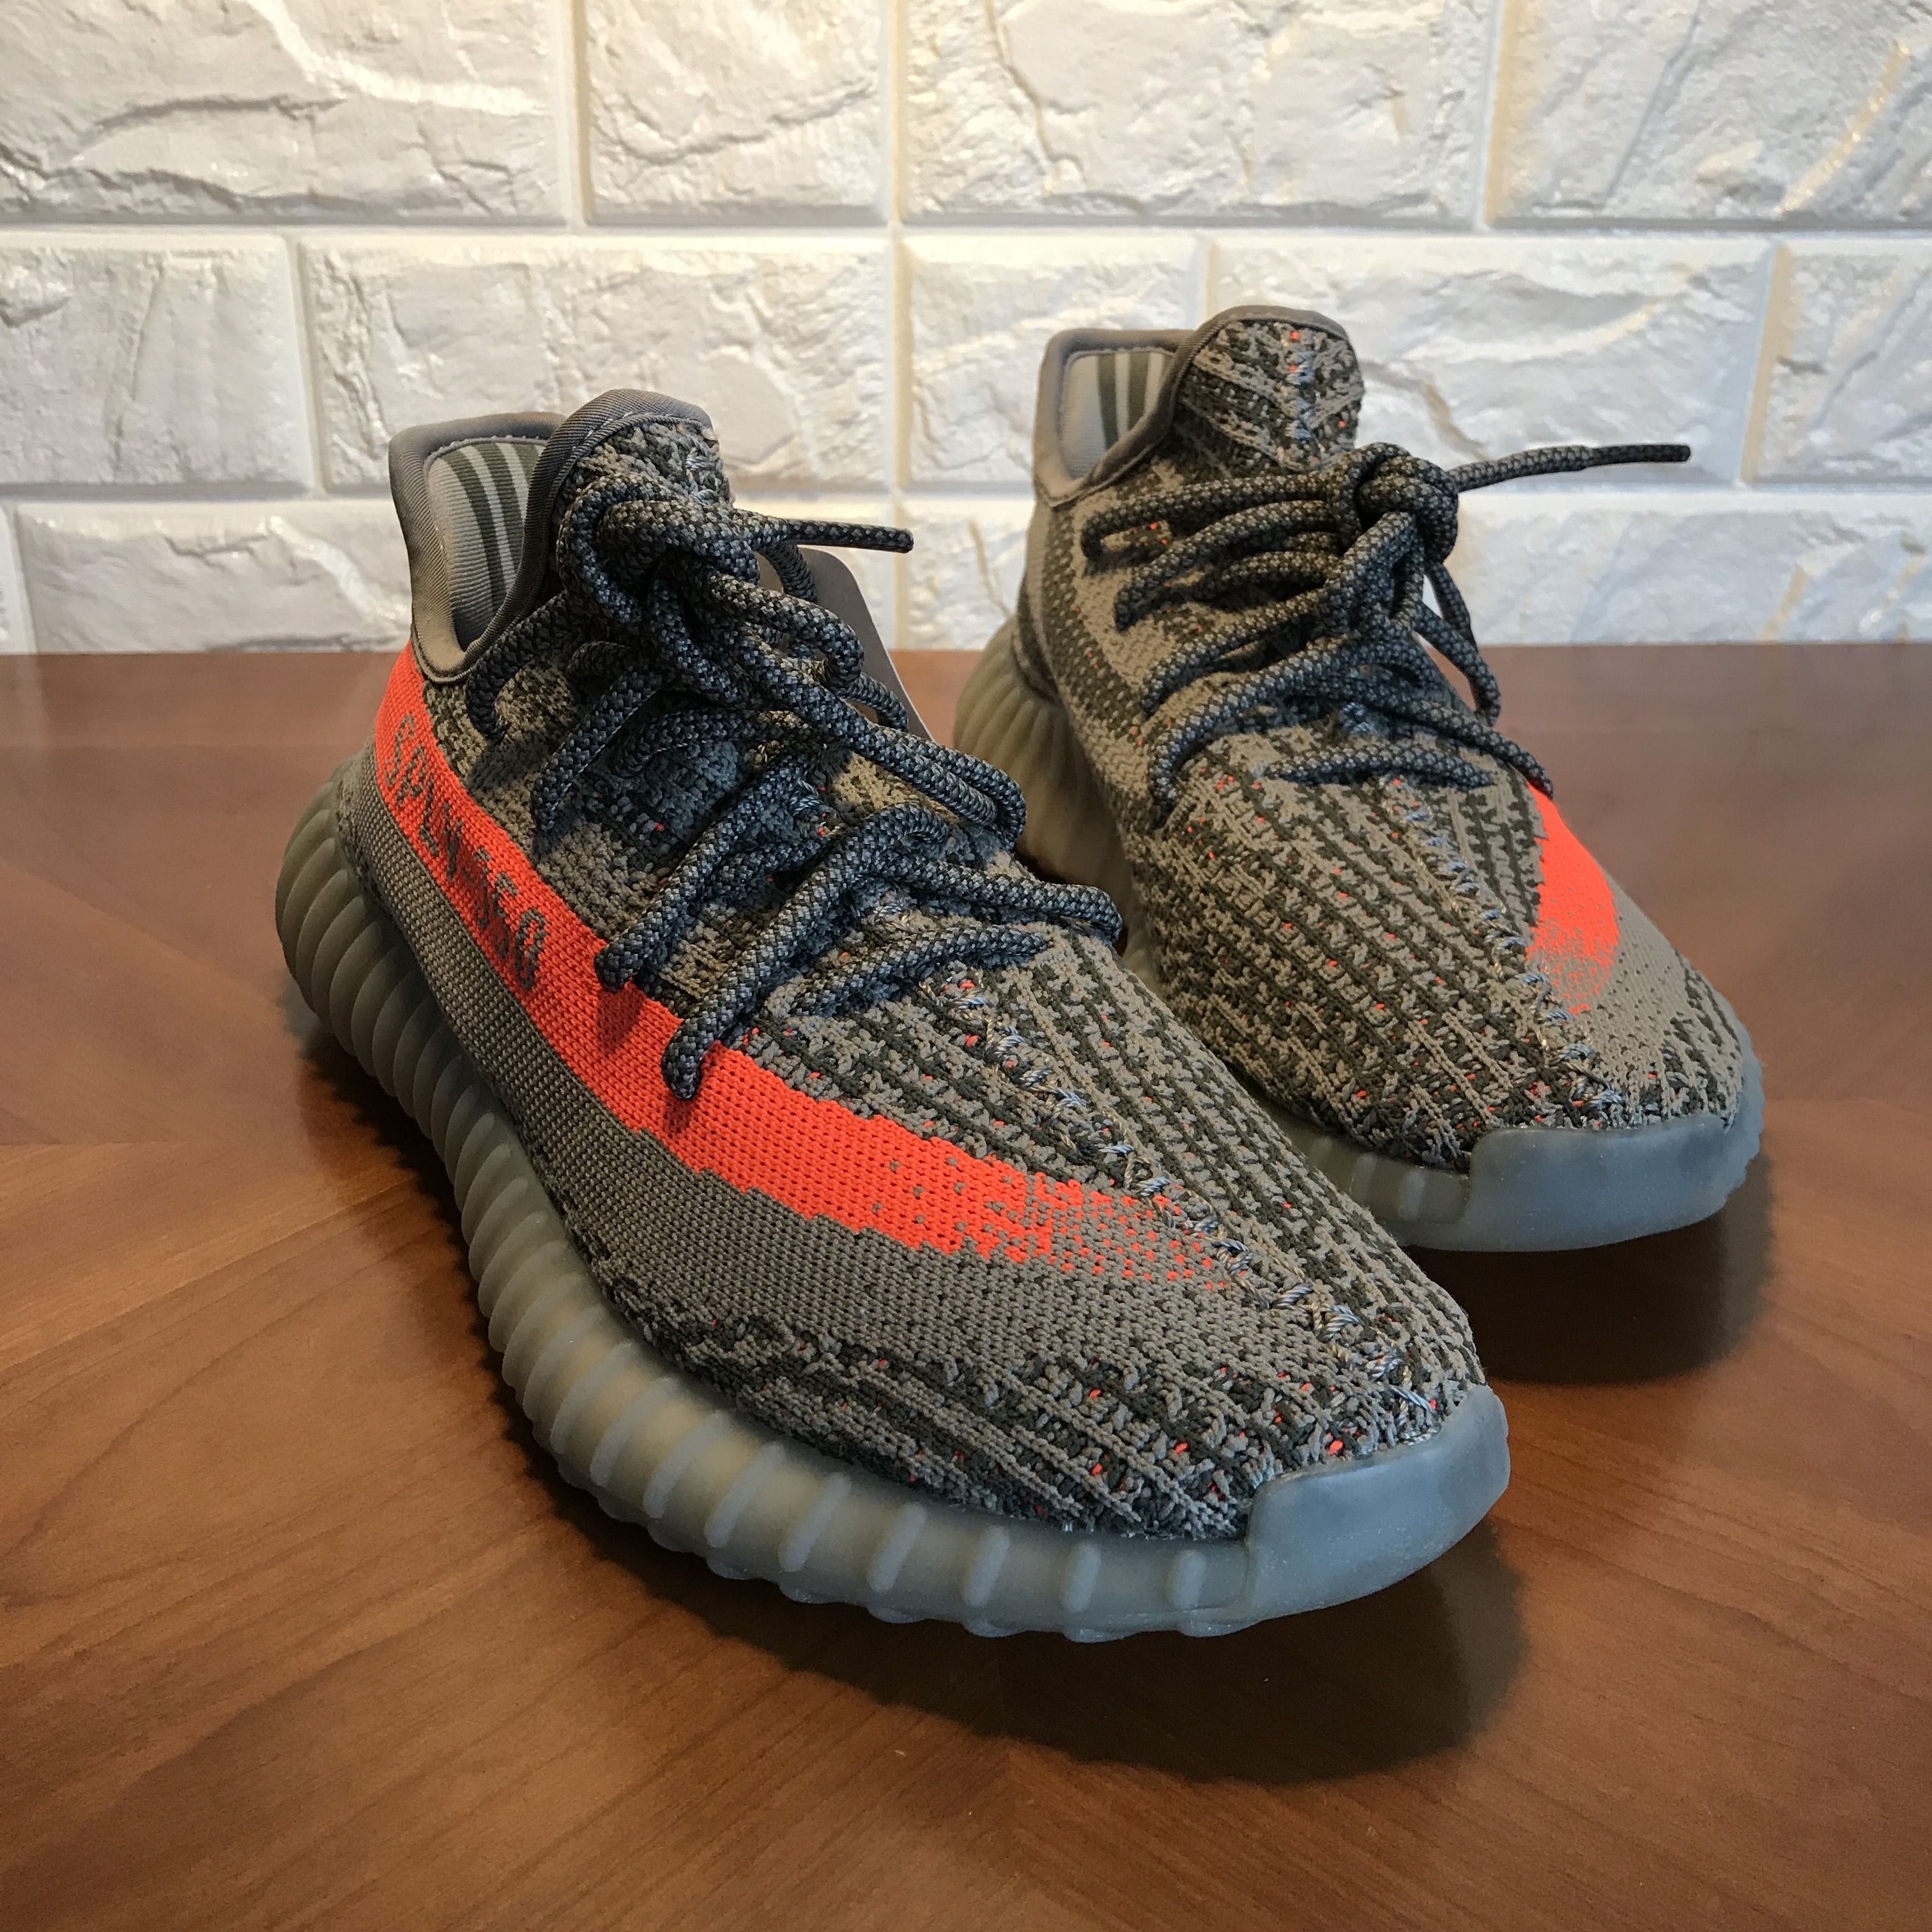 Adidas yeezy unisex man woman sneakers running shoes high ...